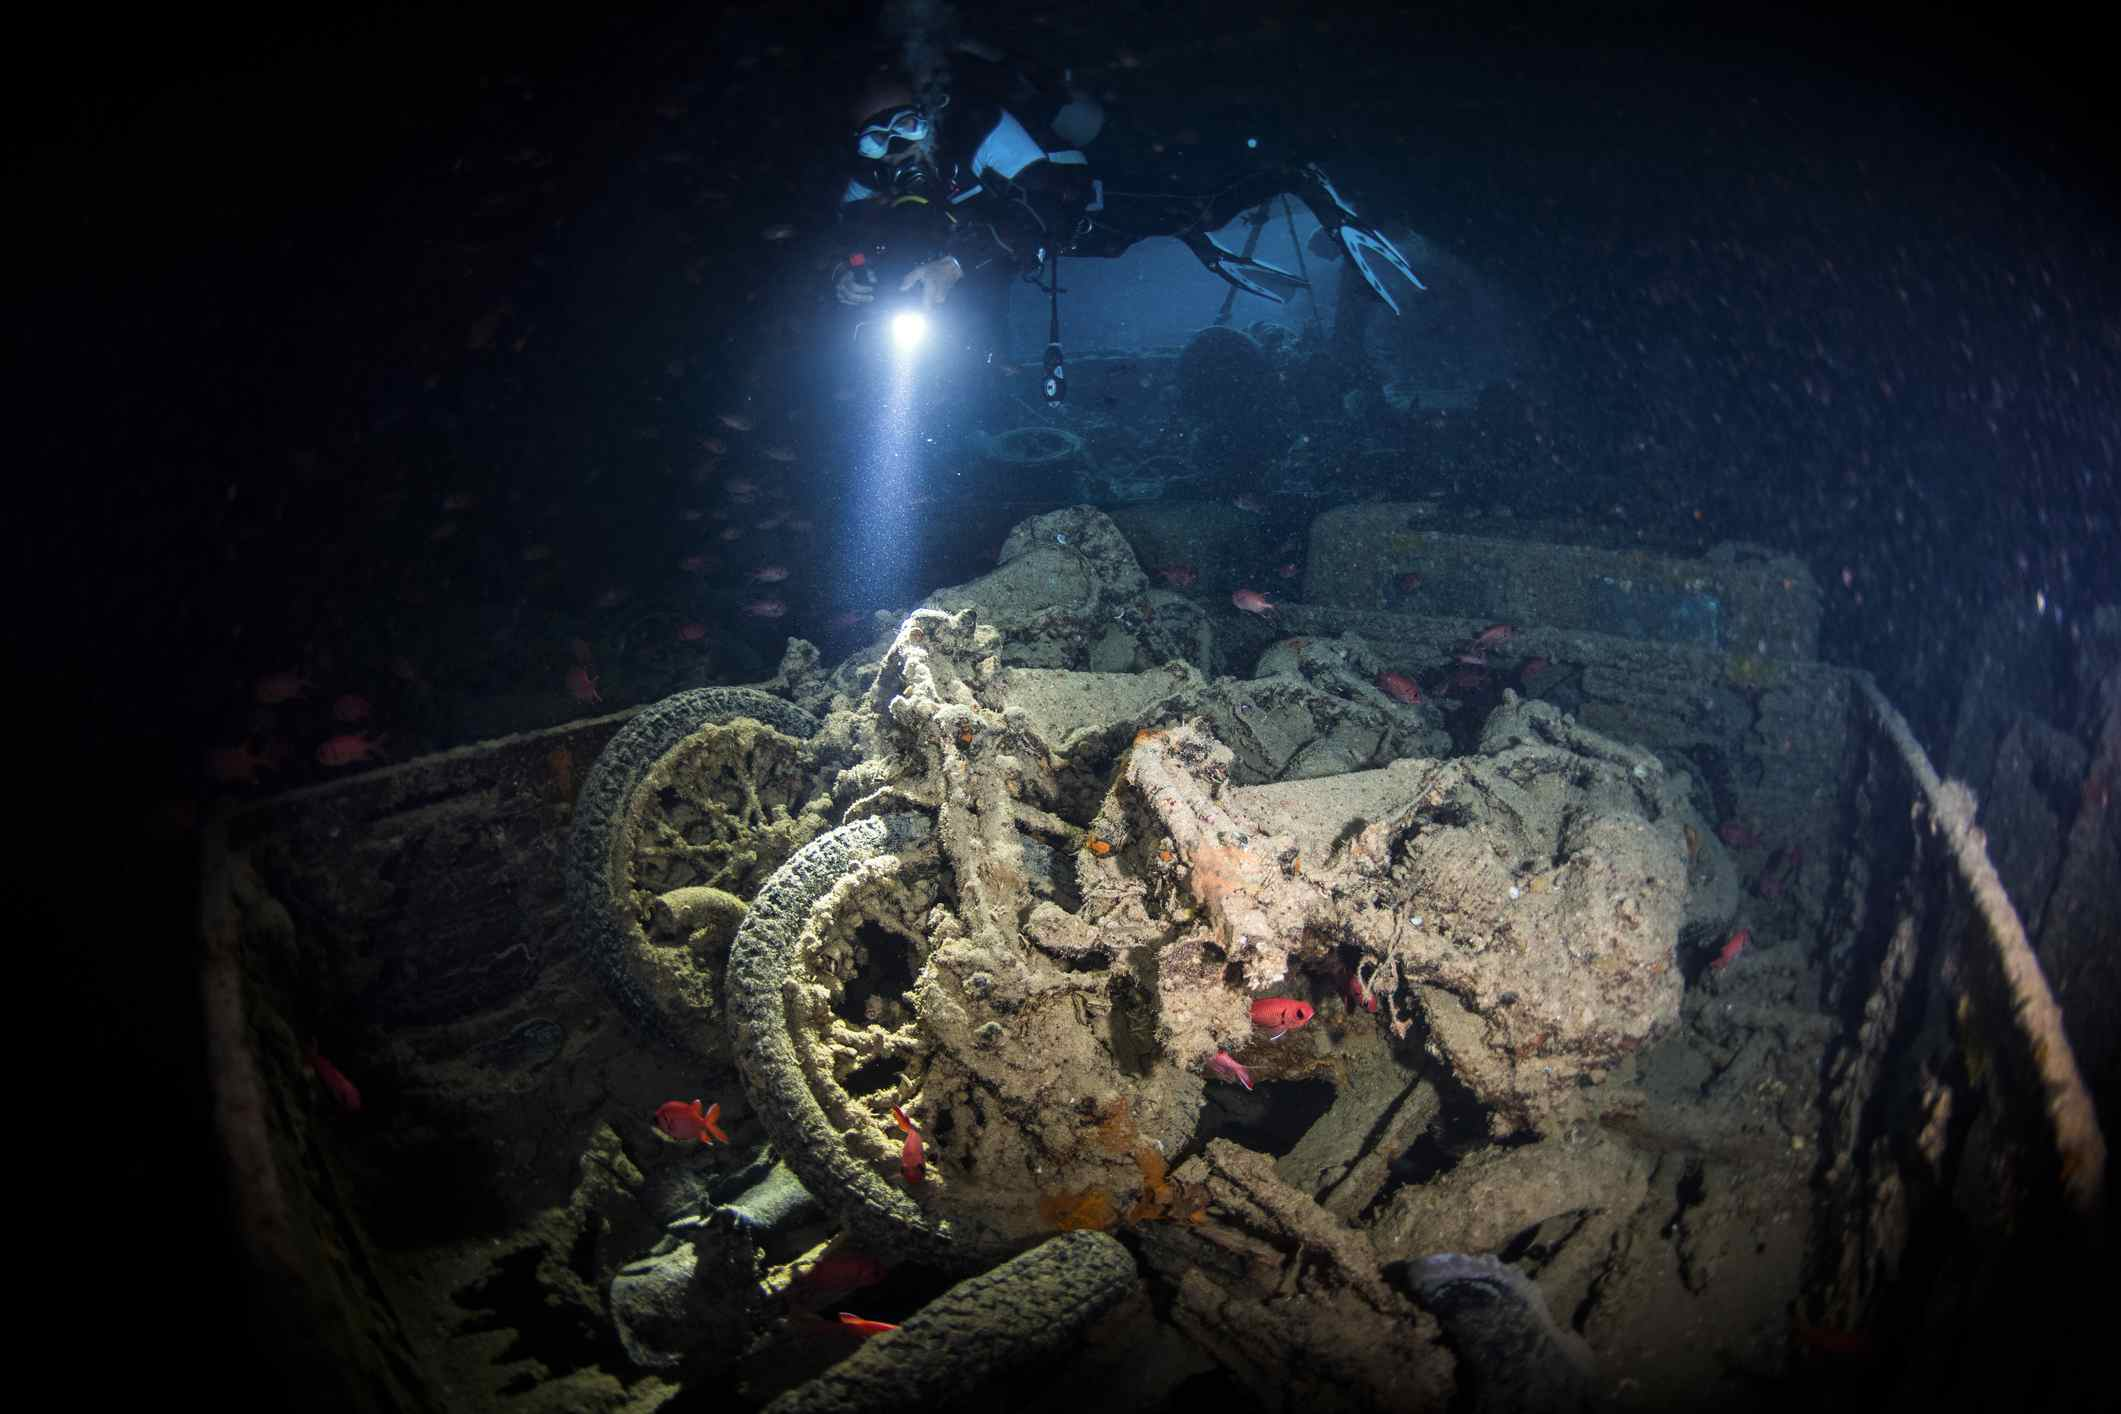 Motorbikes on the wreck of the S.S. Thistlegorm, Egypt